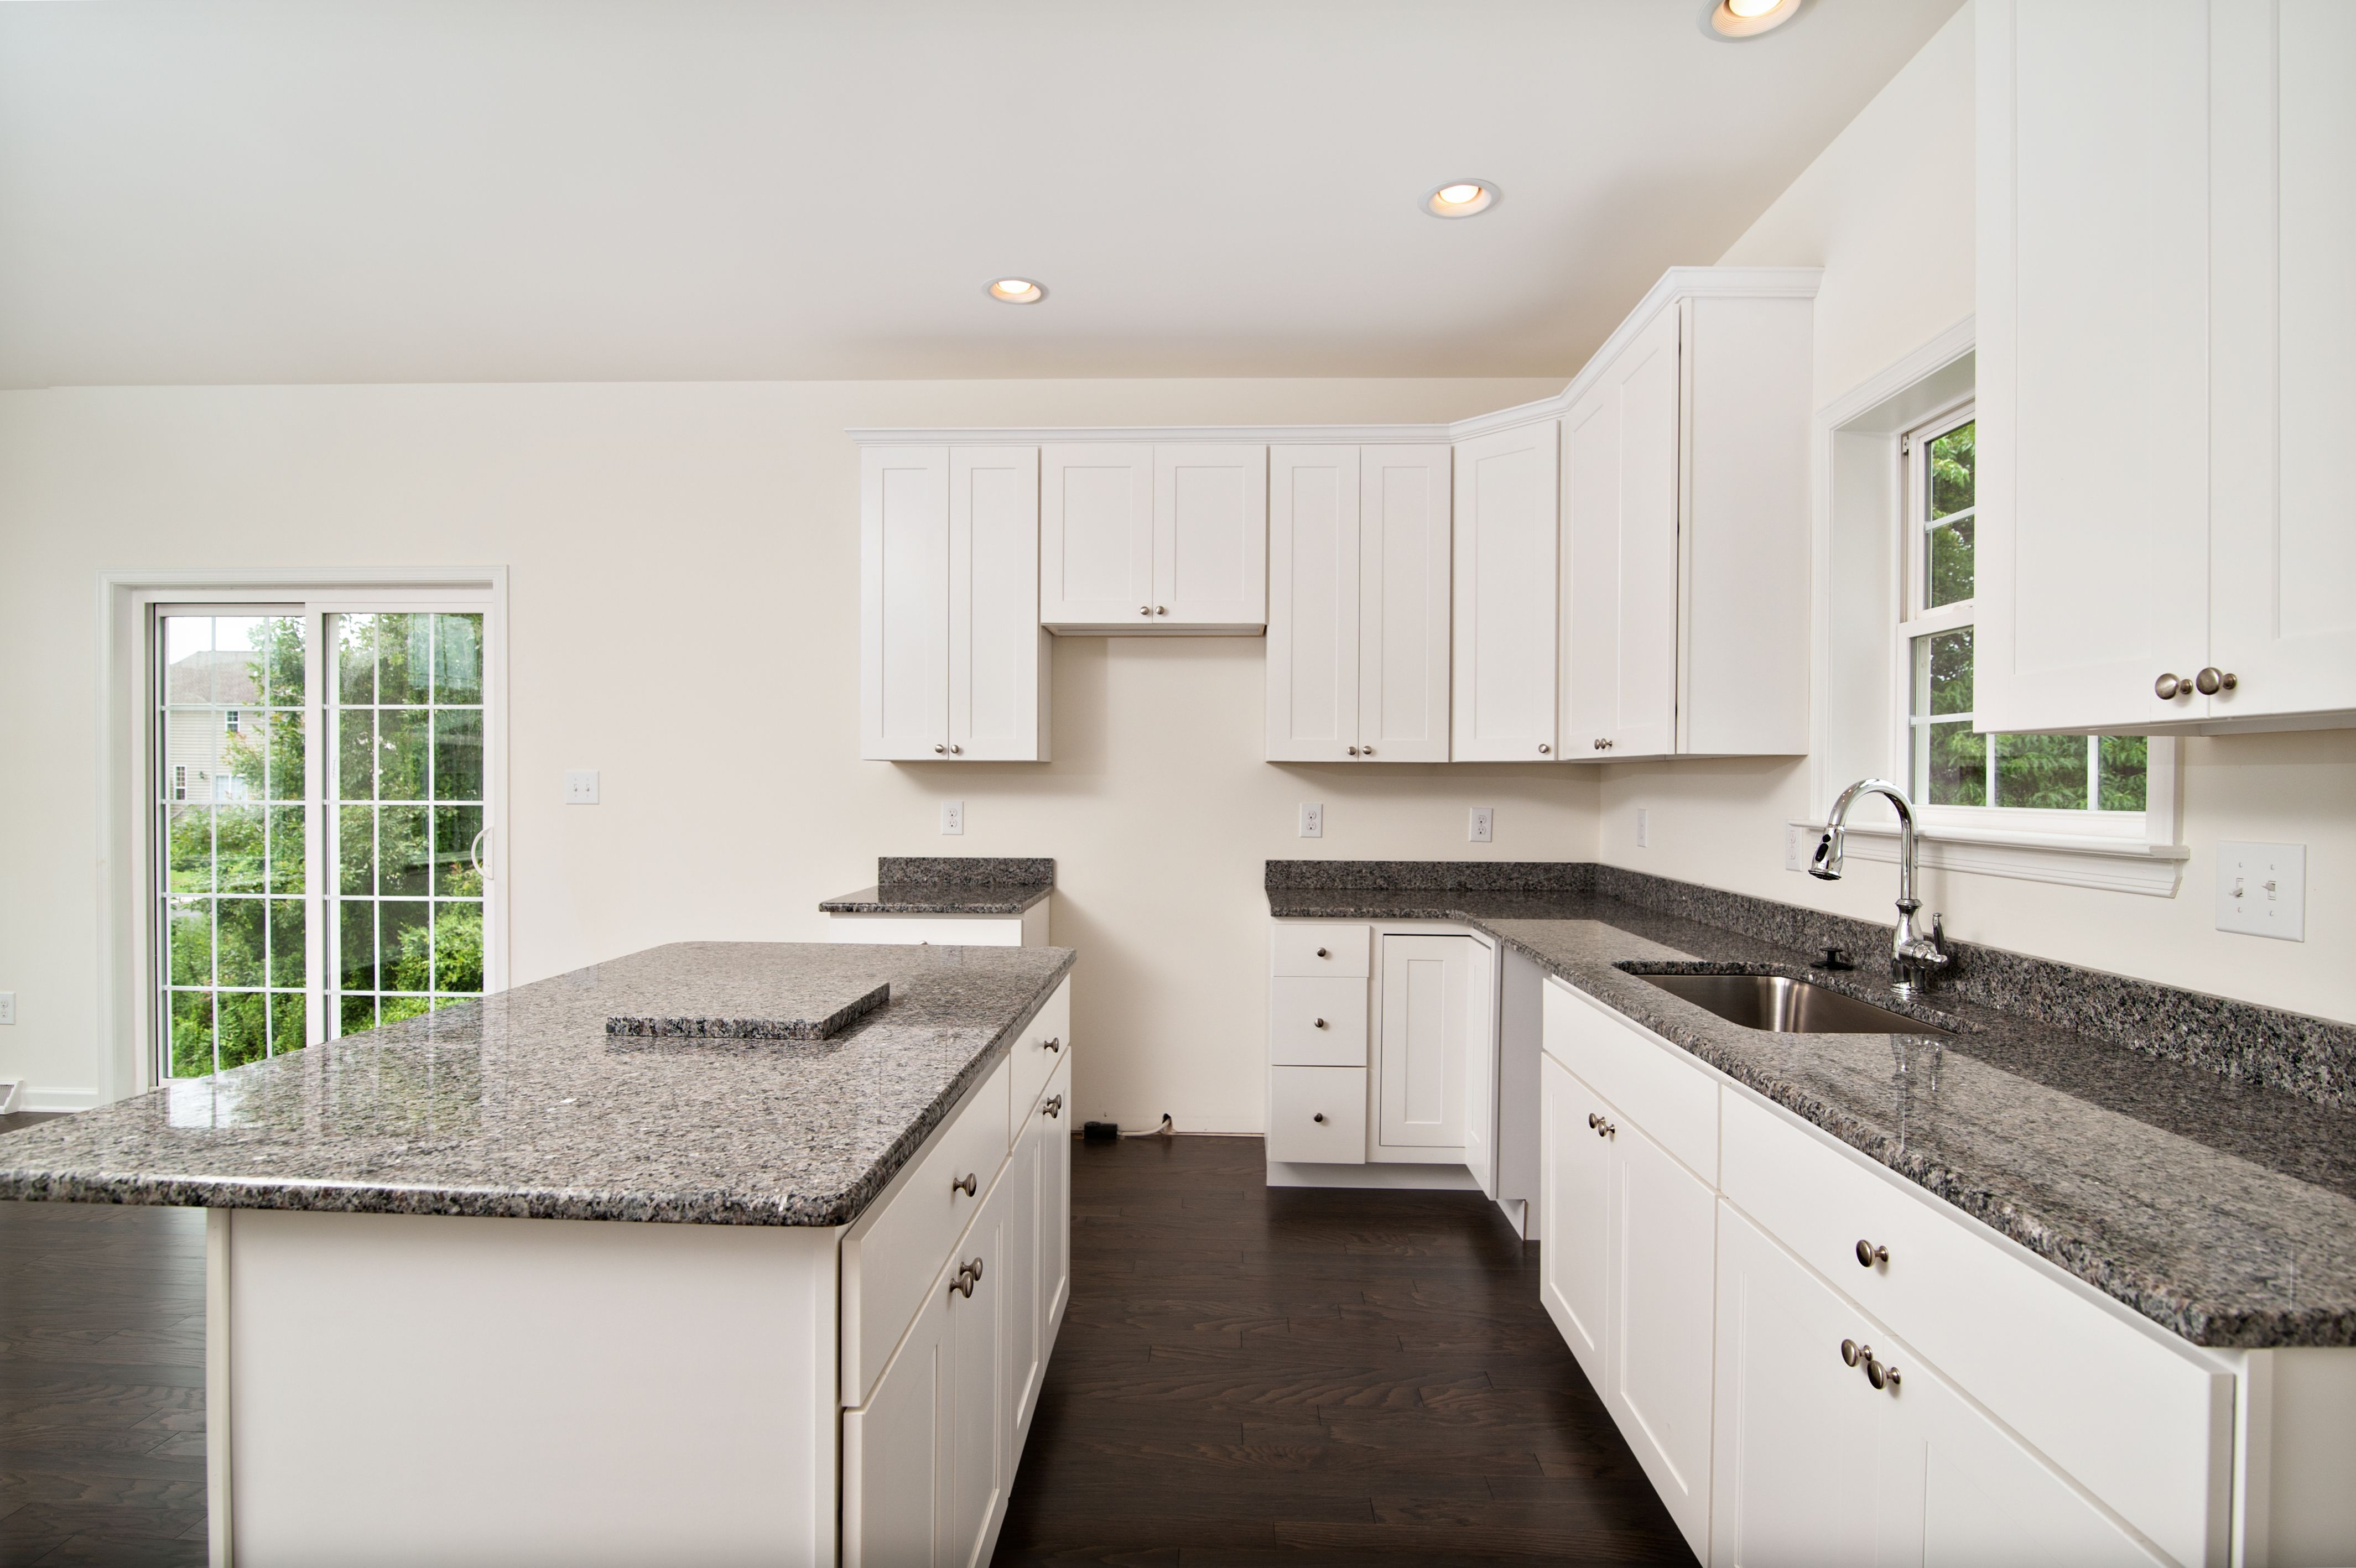 Kitchen featured in The Magnolia By Ashburn Homes in Dover, DE